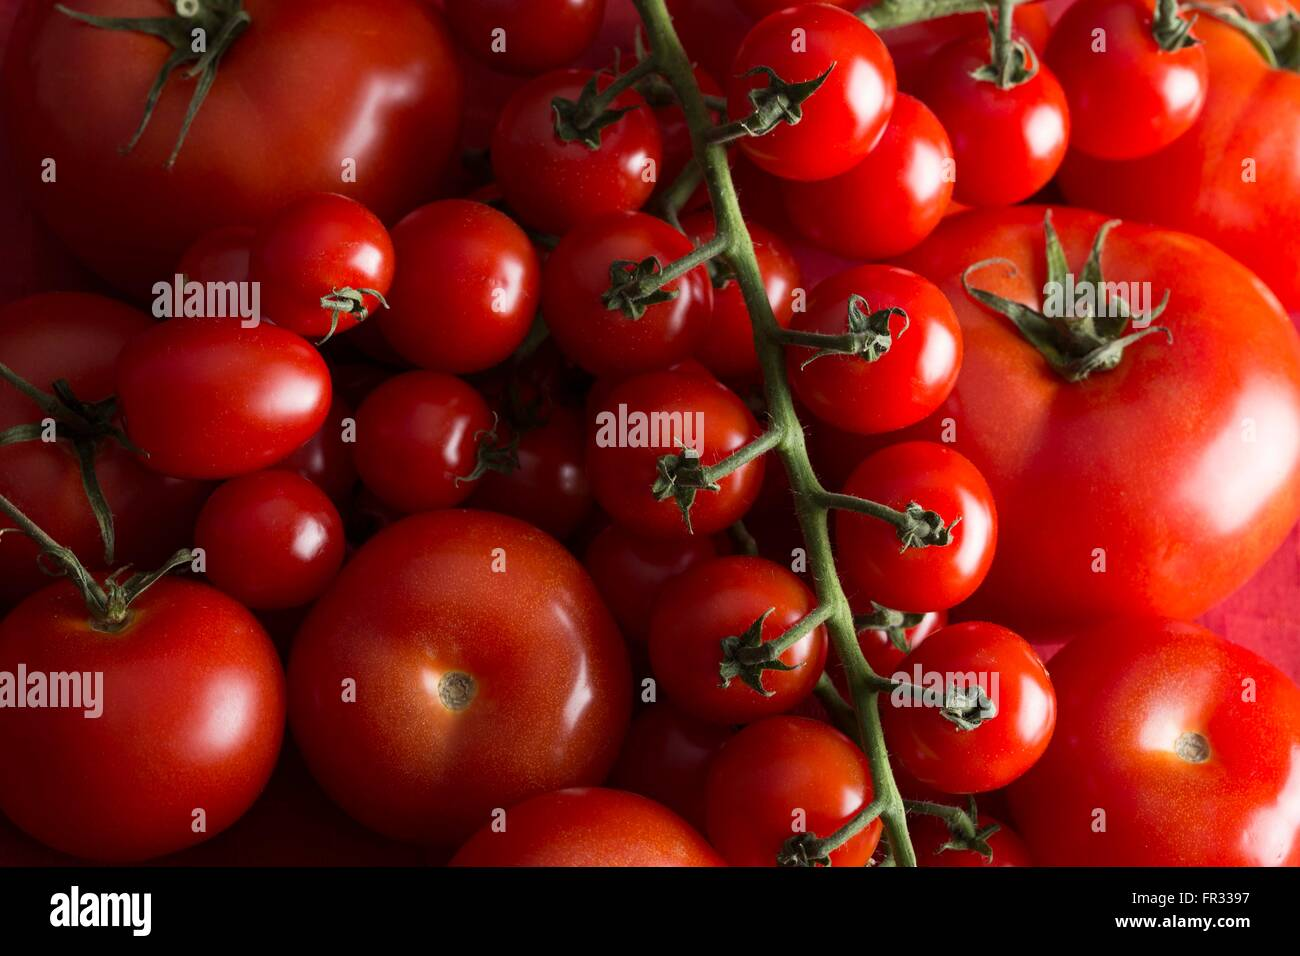 Closely packed image of tomatoes of different sizes - Stock Image